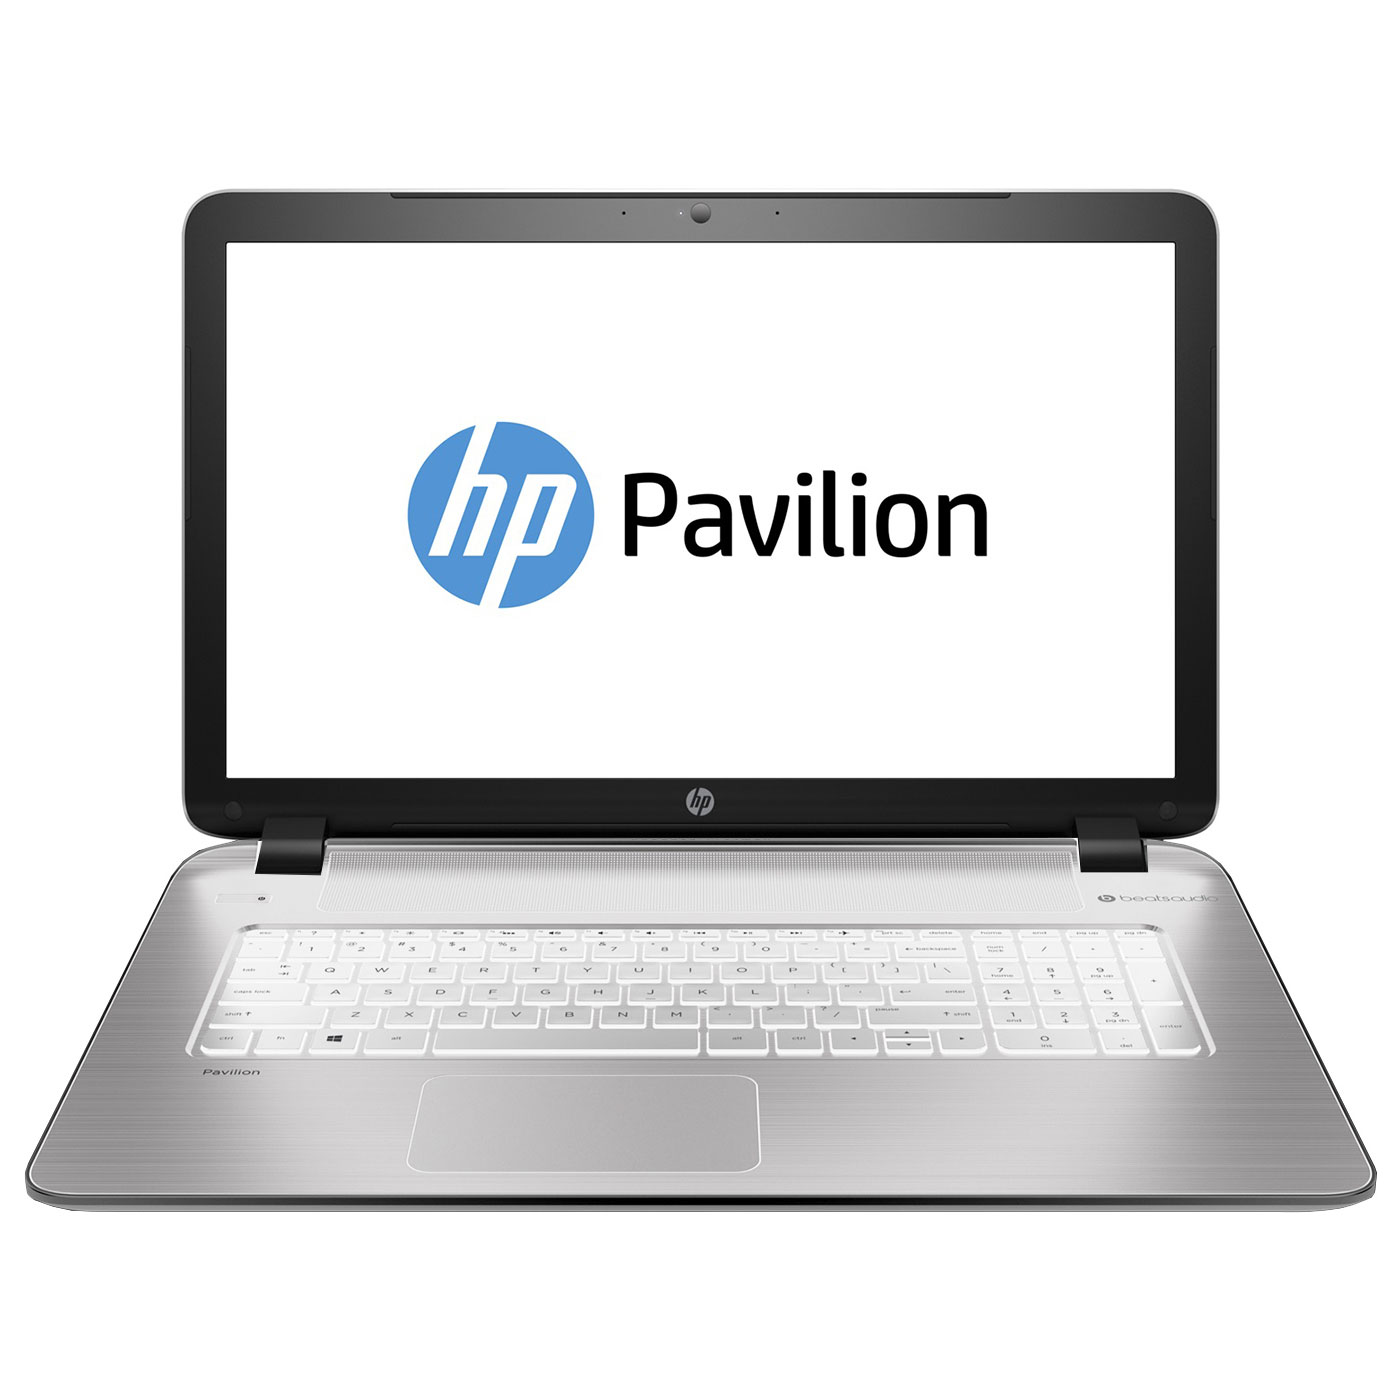 hp pavilion 17 f237nf blanc pc portable hp sur. Black Bedroom Furniture Sets. Home Design Ideas